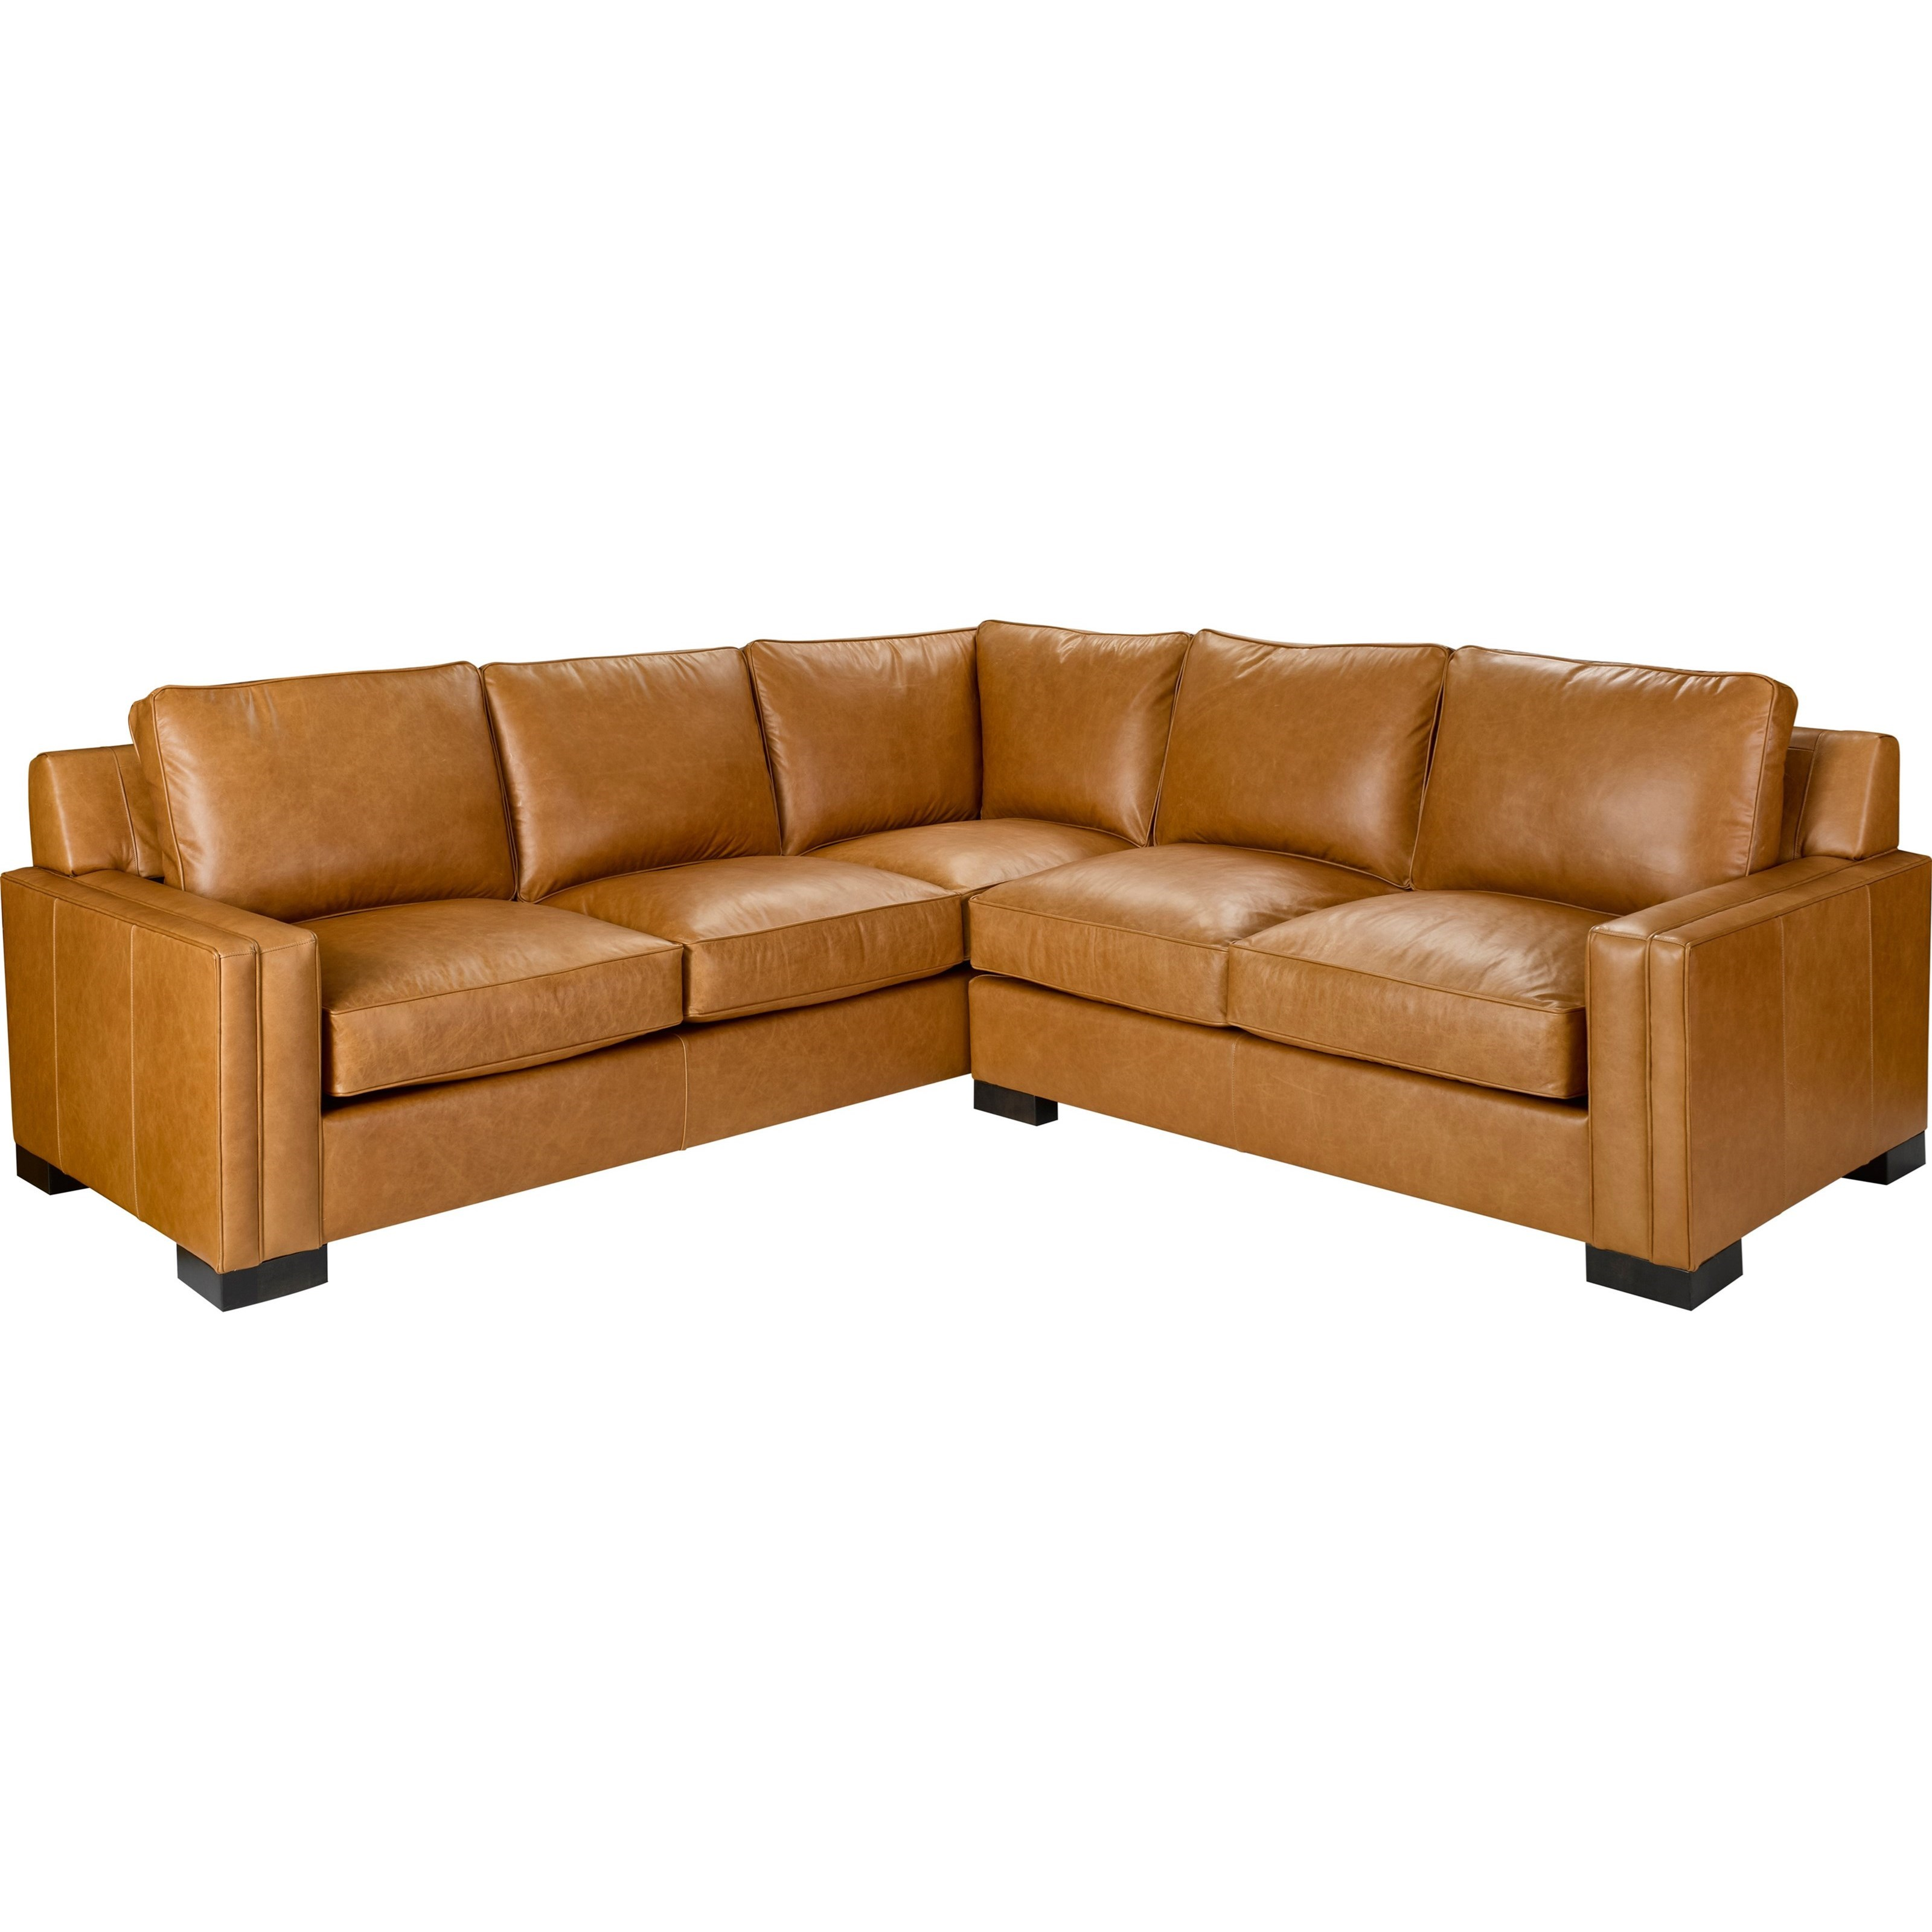 Broyhill Furniture Rocco 2 Piece Sectional With Corner Sofa Value City Furniture Sectional Sofas